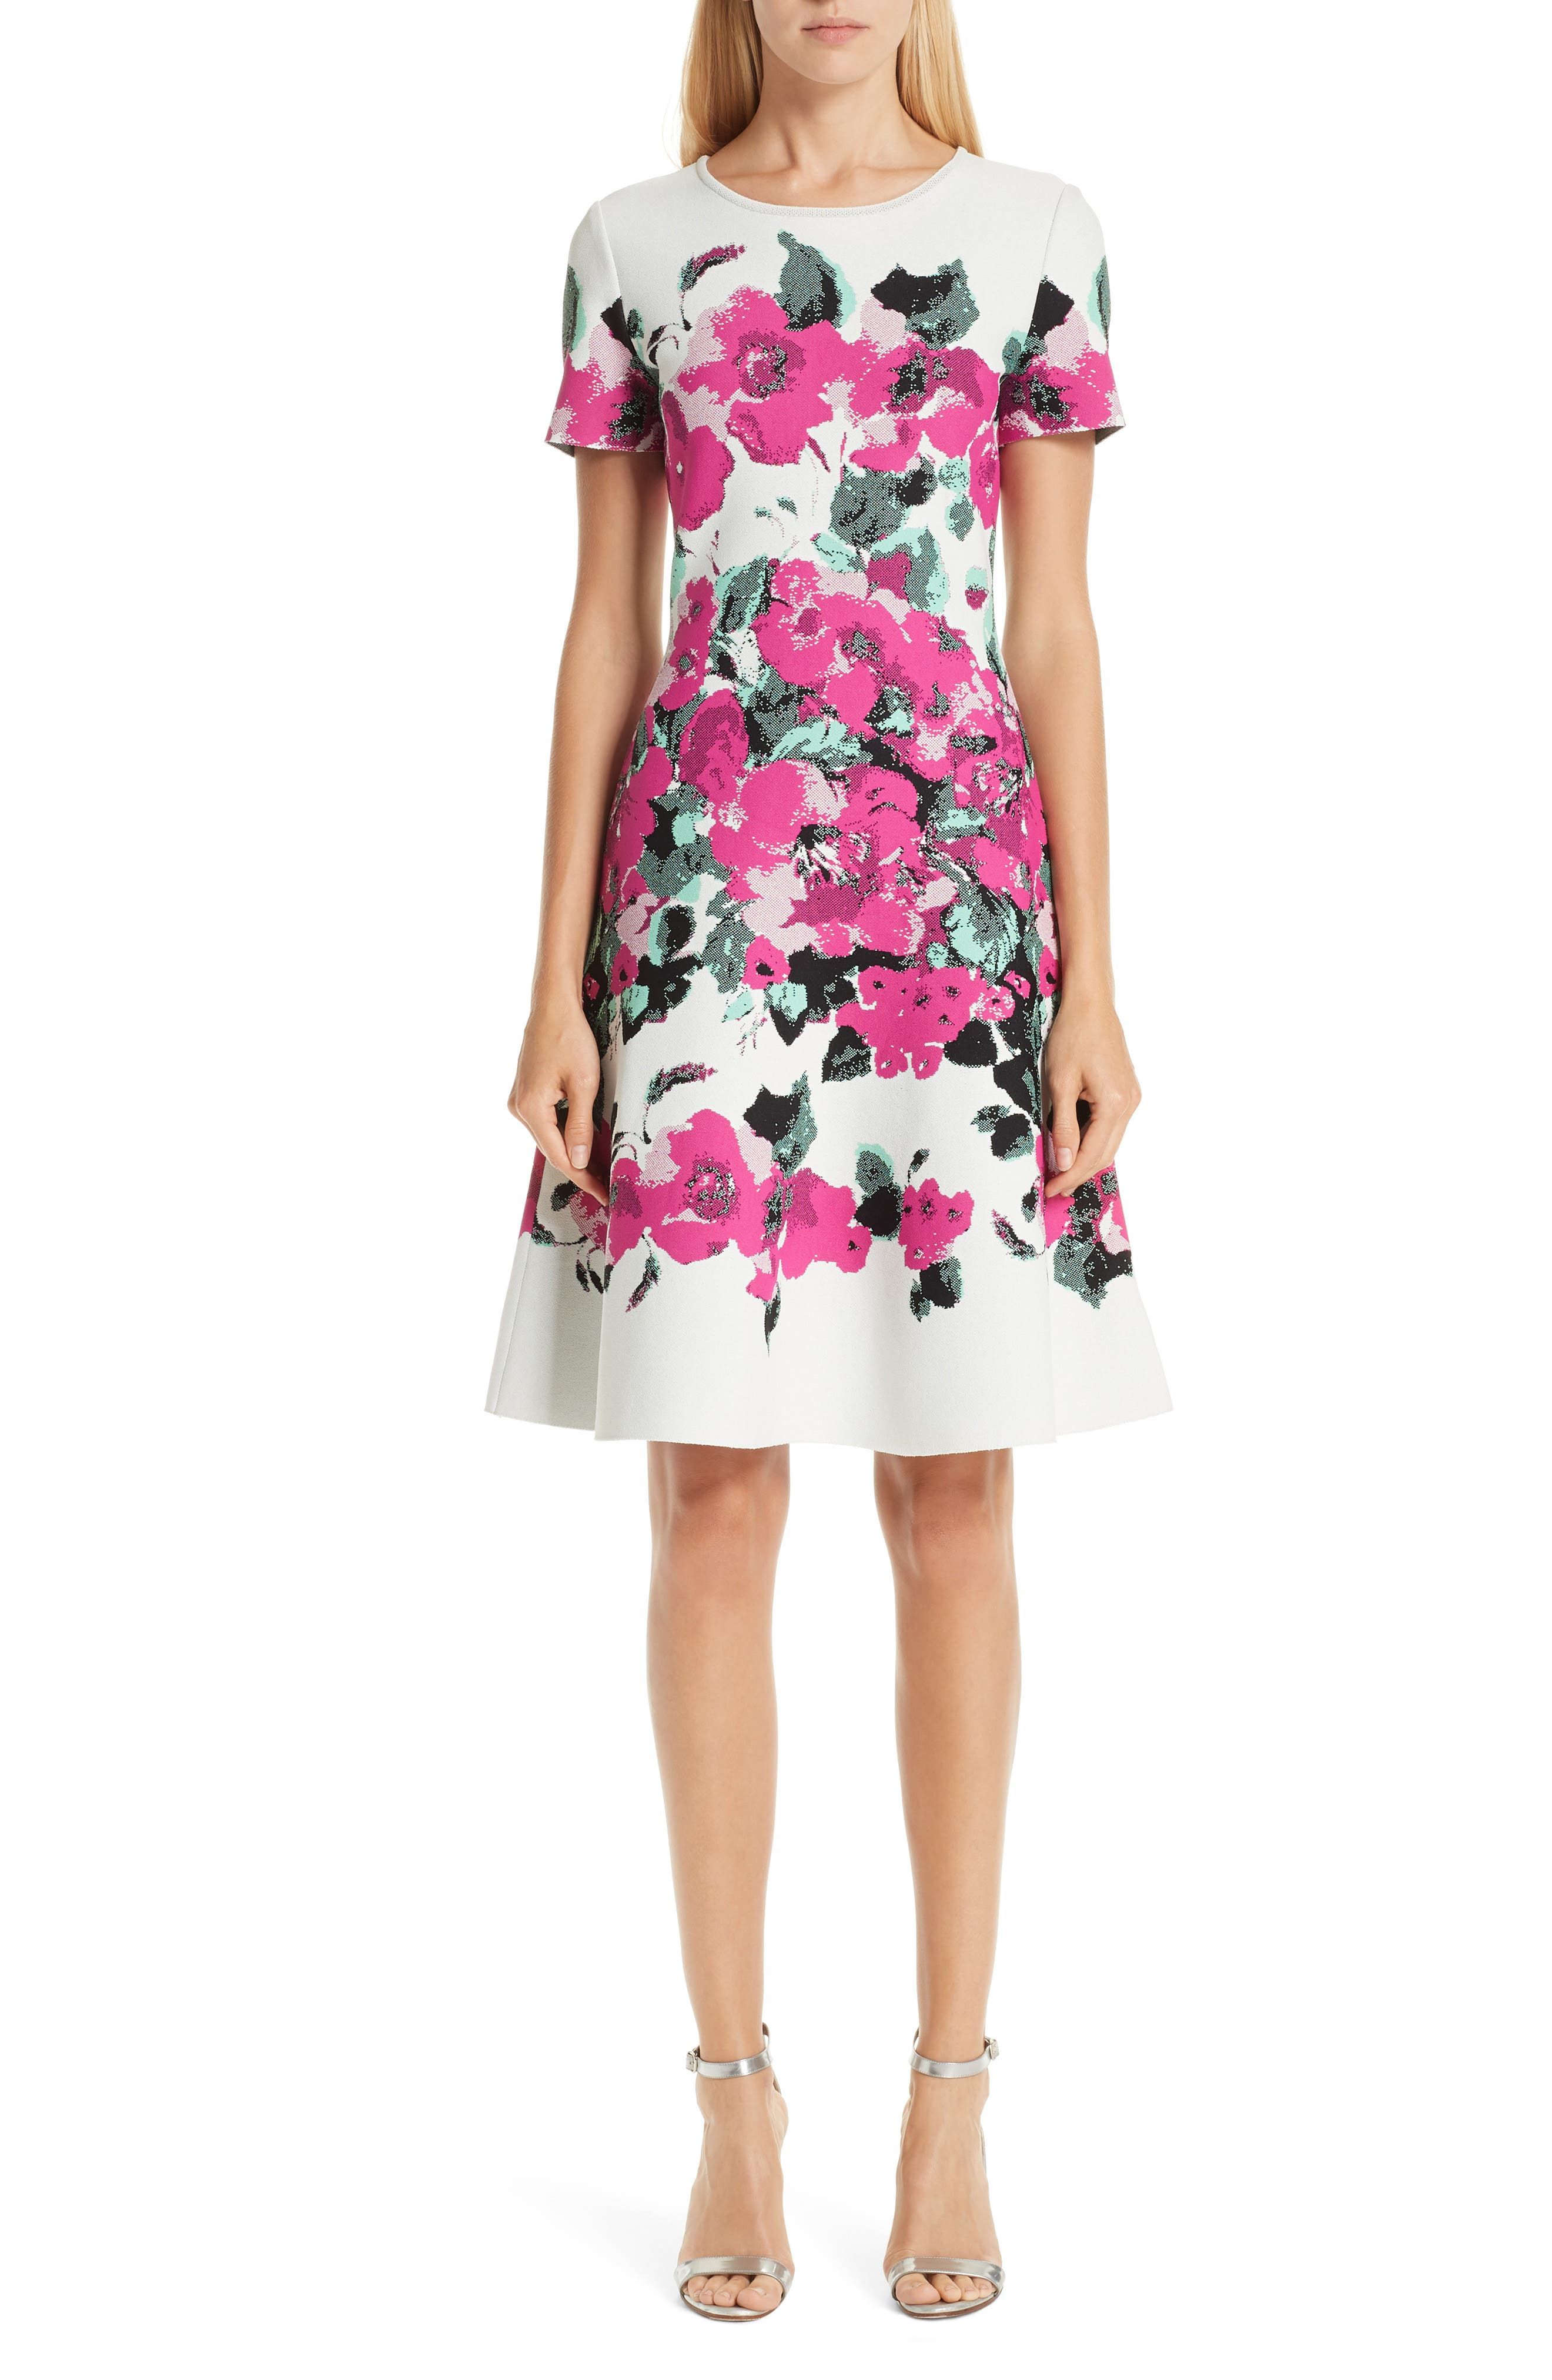 ST. JOHN Short-Sleeve Blooming Jacquard Fit-And-Flare Dress in Cream/ Camellia Multi